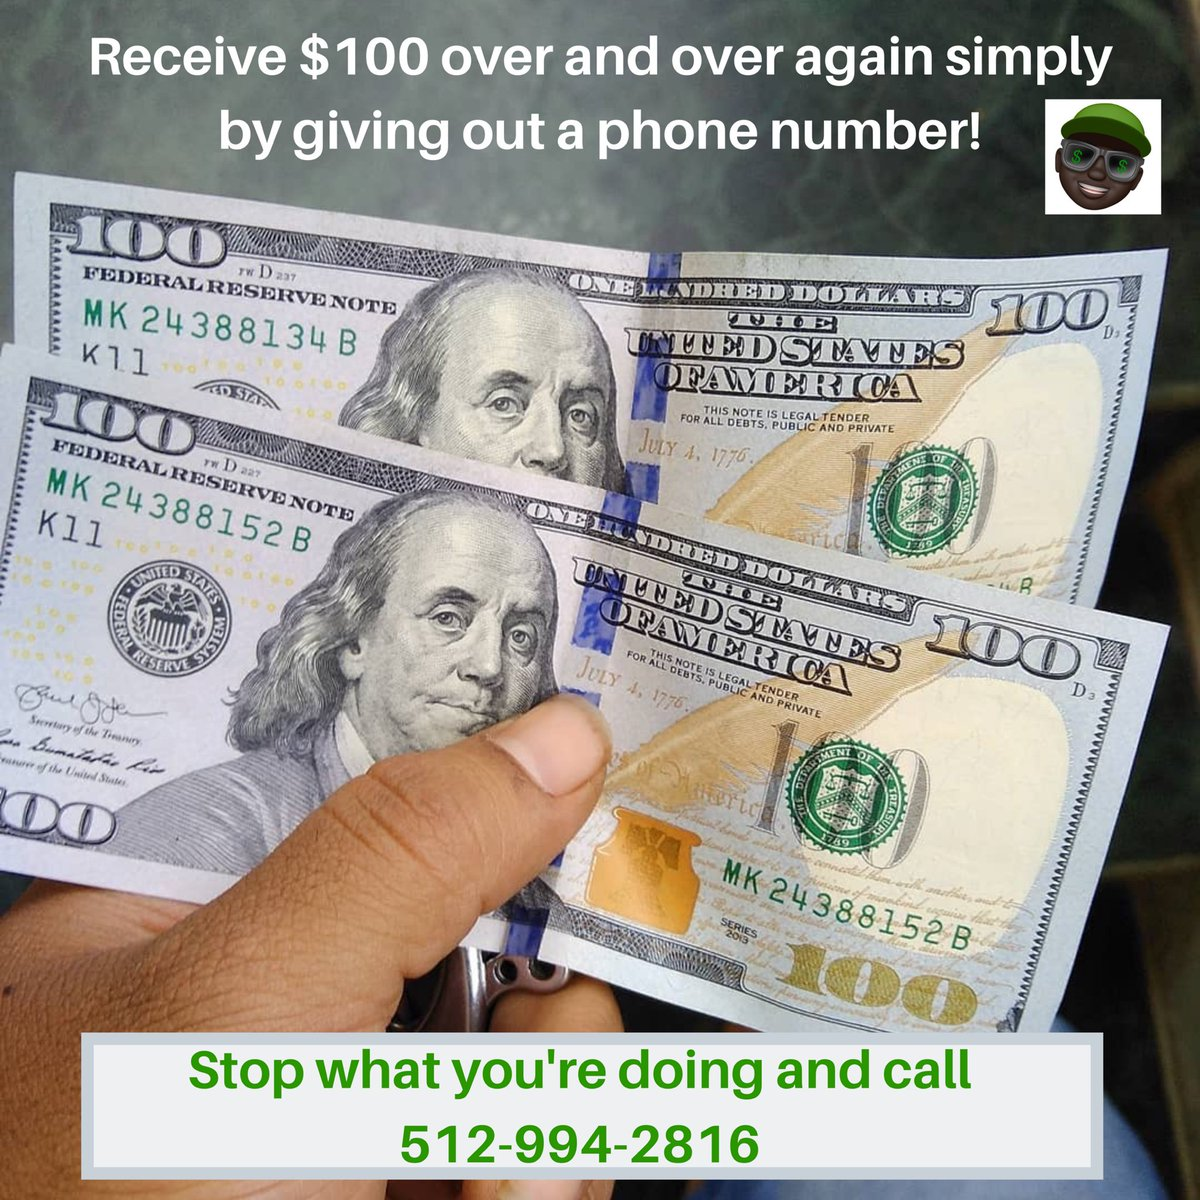 MAKE $100 A DAY - Stop what you're doing and call 512-994-2816!  Call the number, get the details and start receiving $100 paid DIRECTLY TO YOUR CASH APP Call now! 512-994-2816